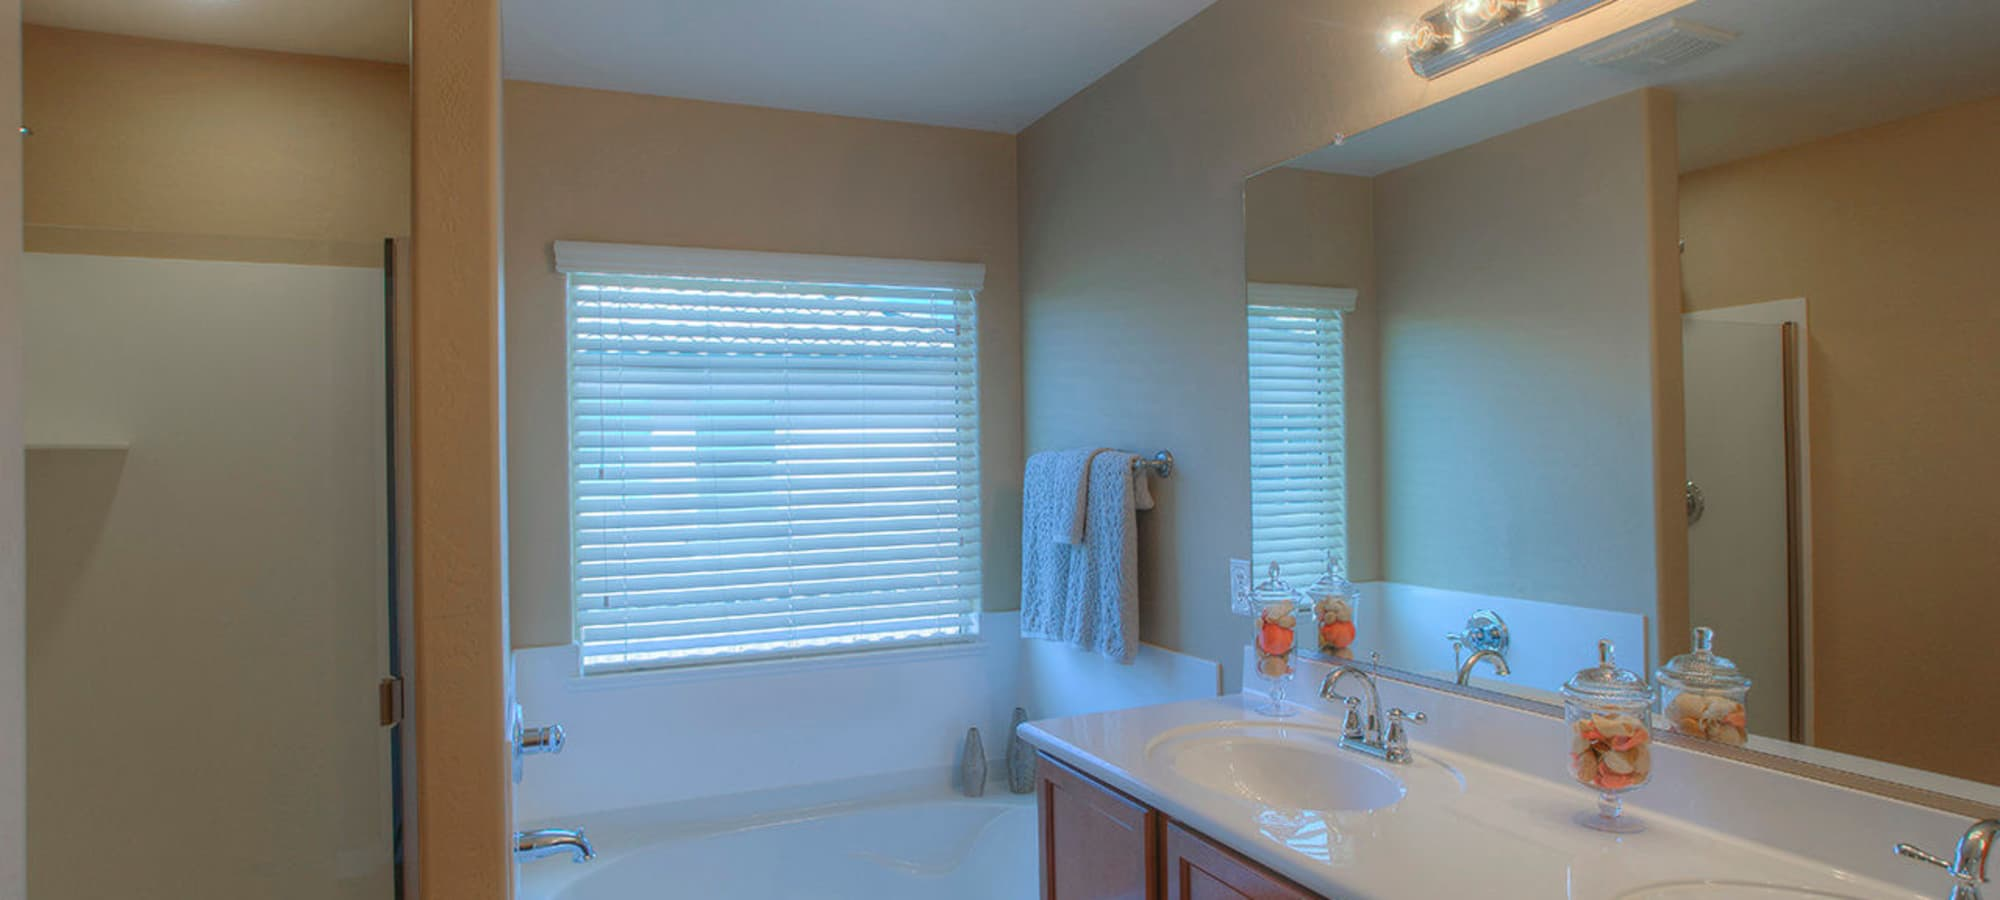 Large bathroom with vanity mirror in model home at BB Living at Higley Park in Gilbert, Arizona